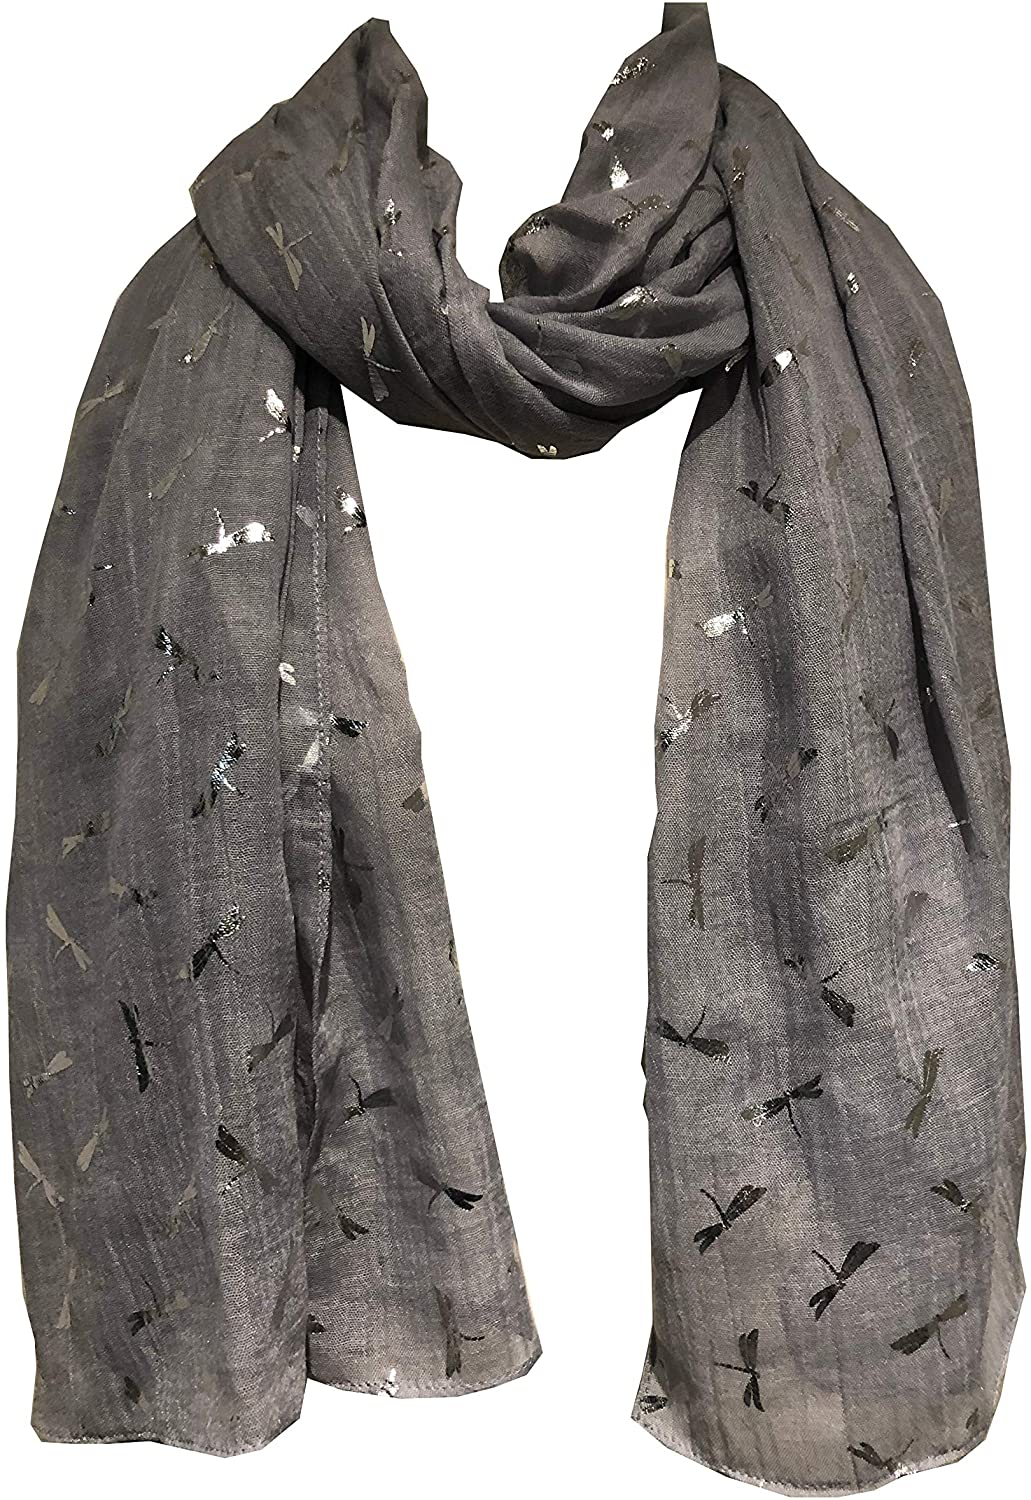 Pamper Yourself Now Grey with Silver Glitter Mini Dragonfly Scarf/wrap